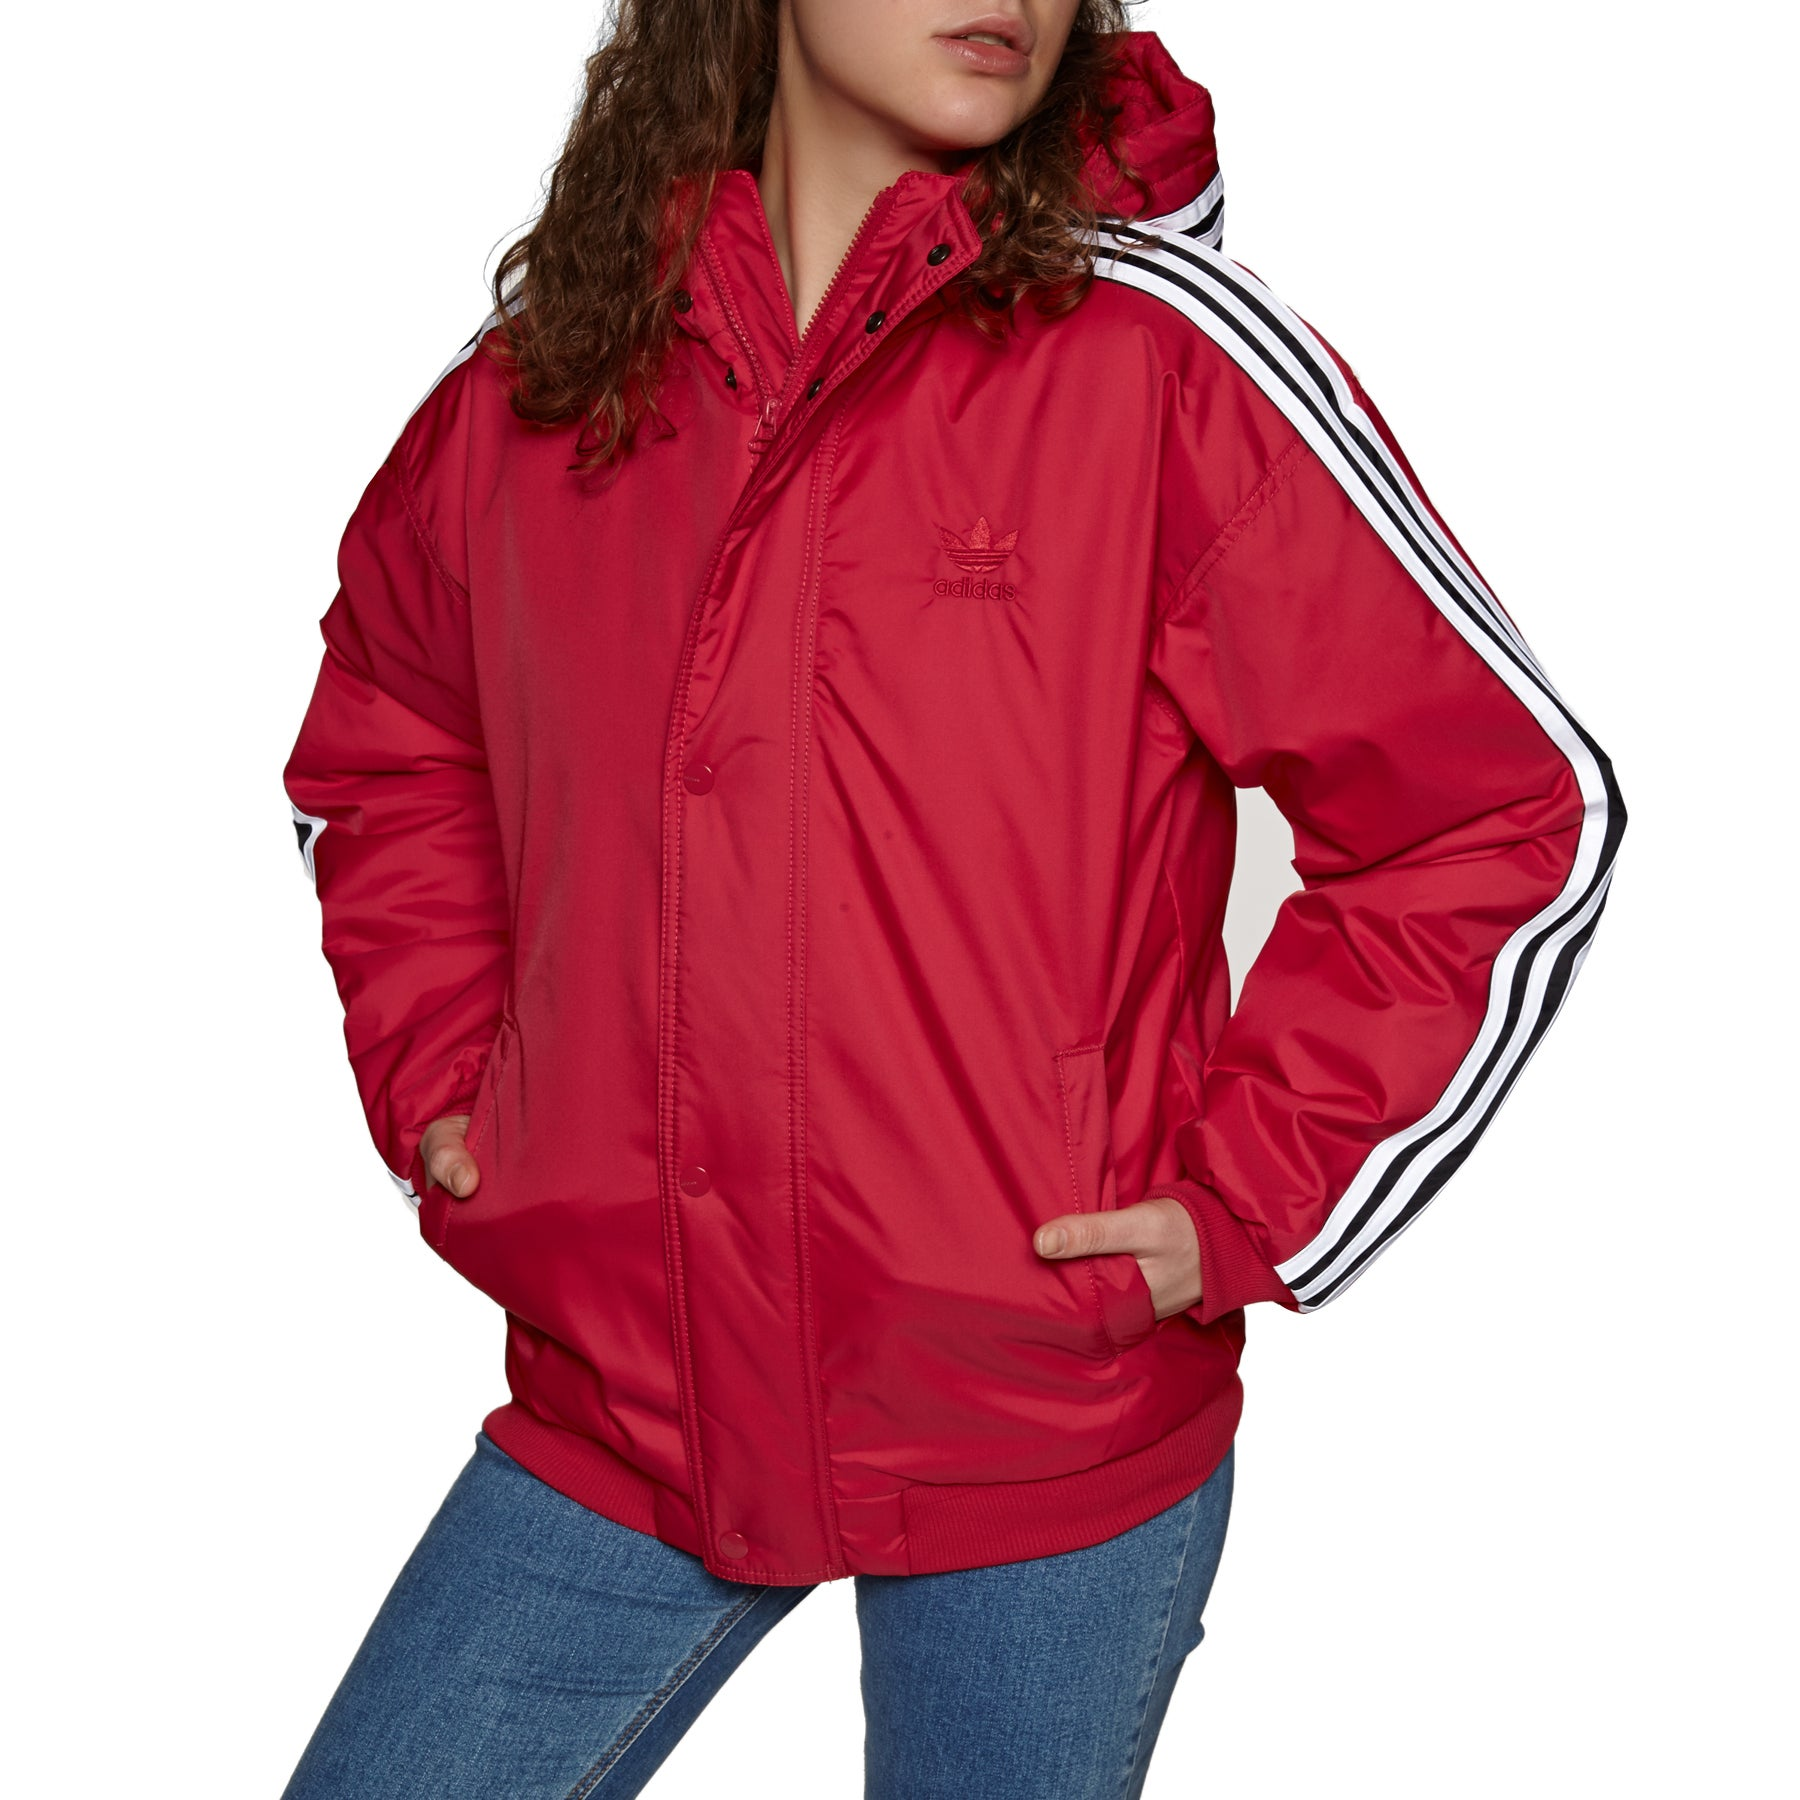 dc40c5baab51 Adidas Originals SST Womens Track Jacket available from Surfdome